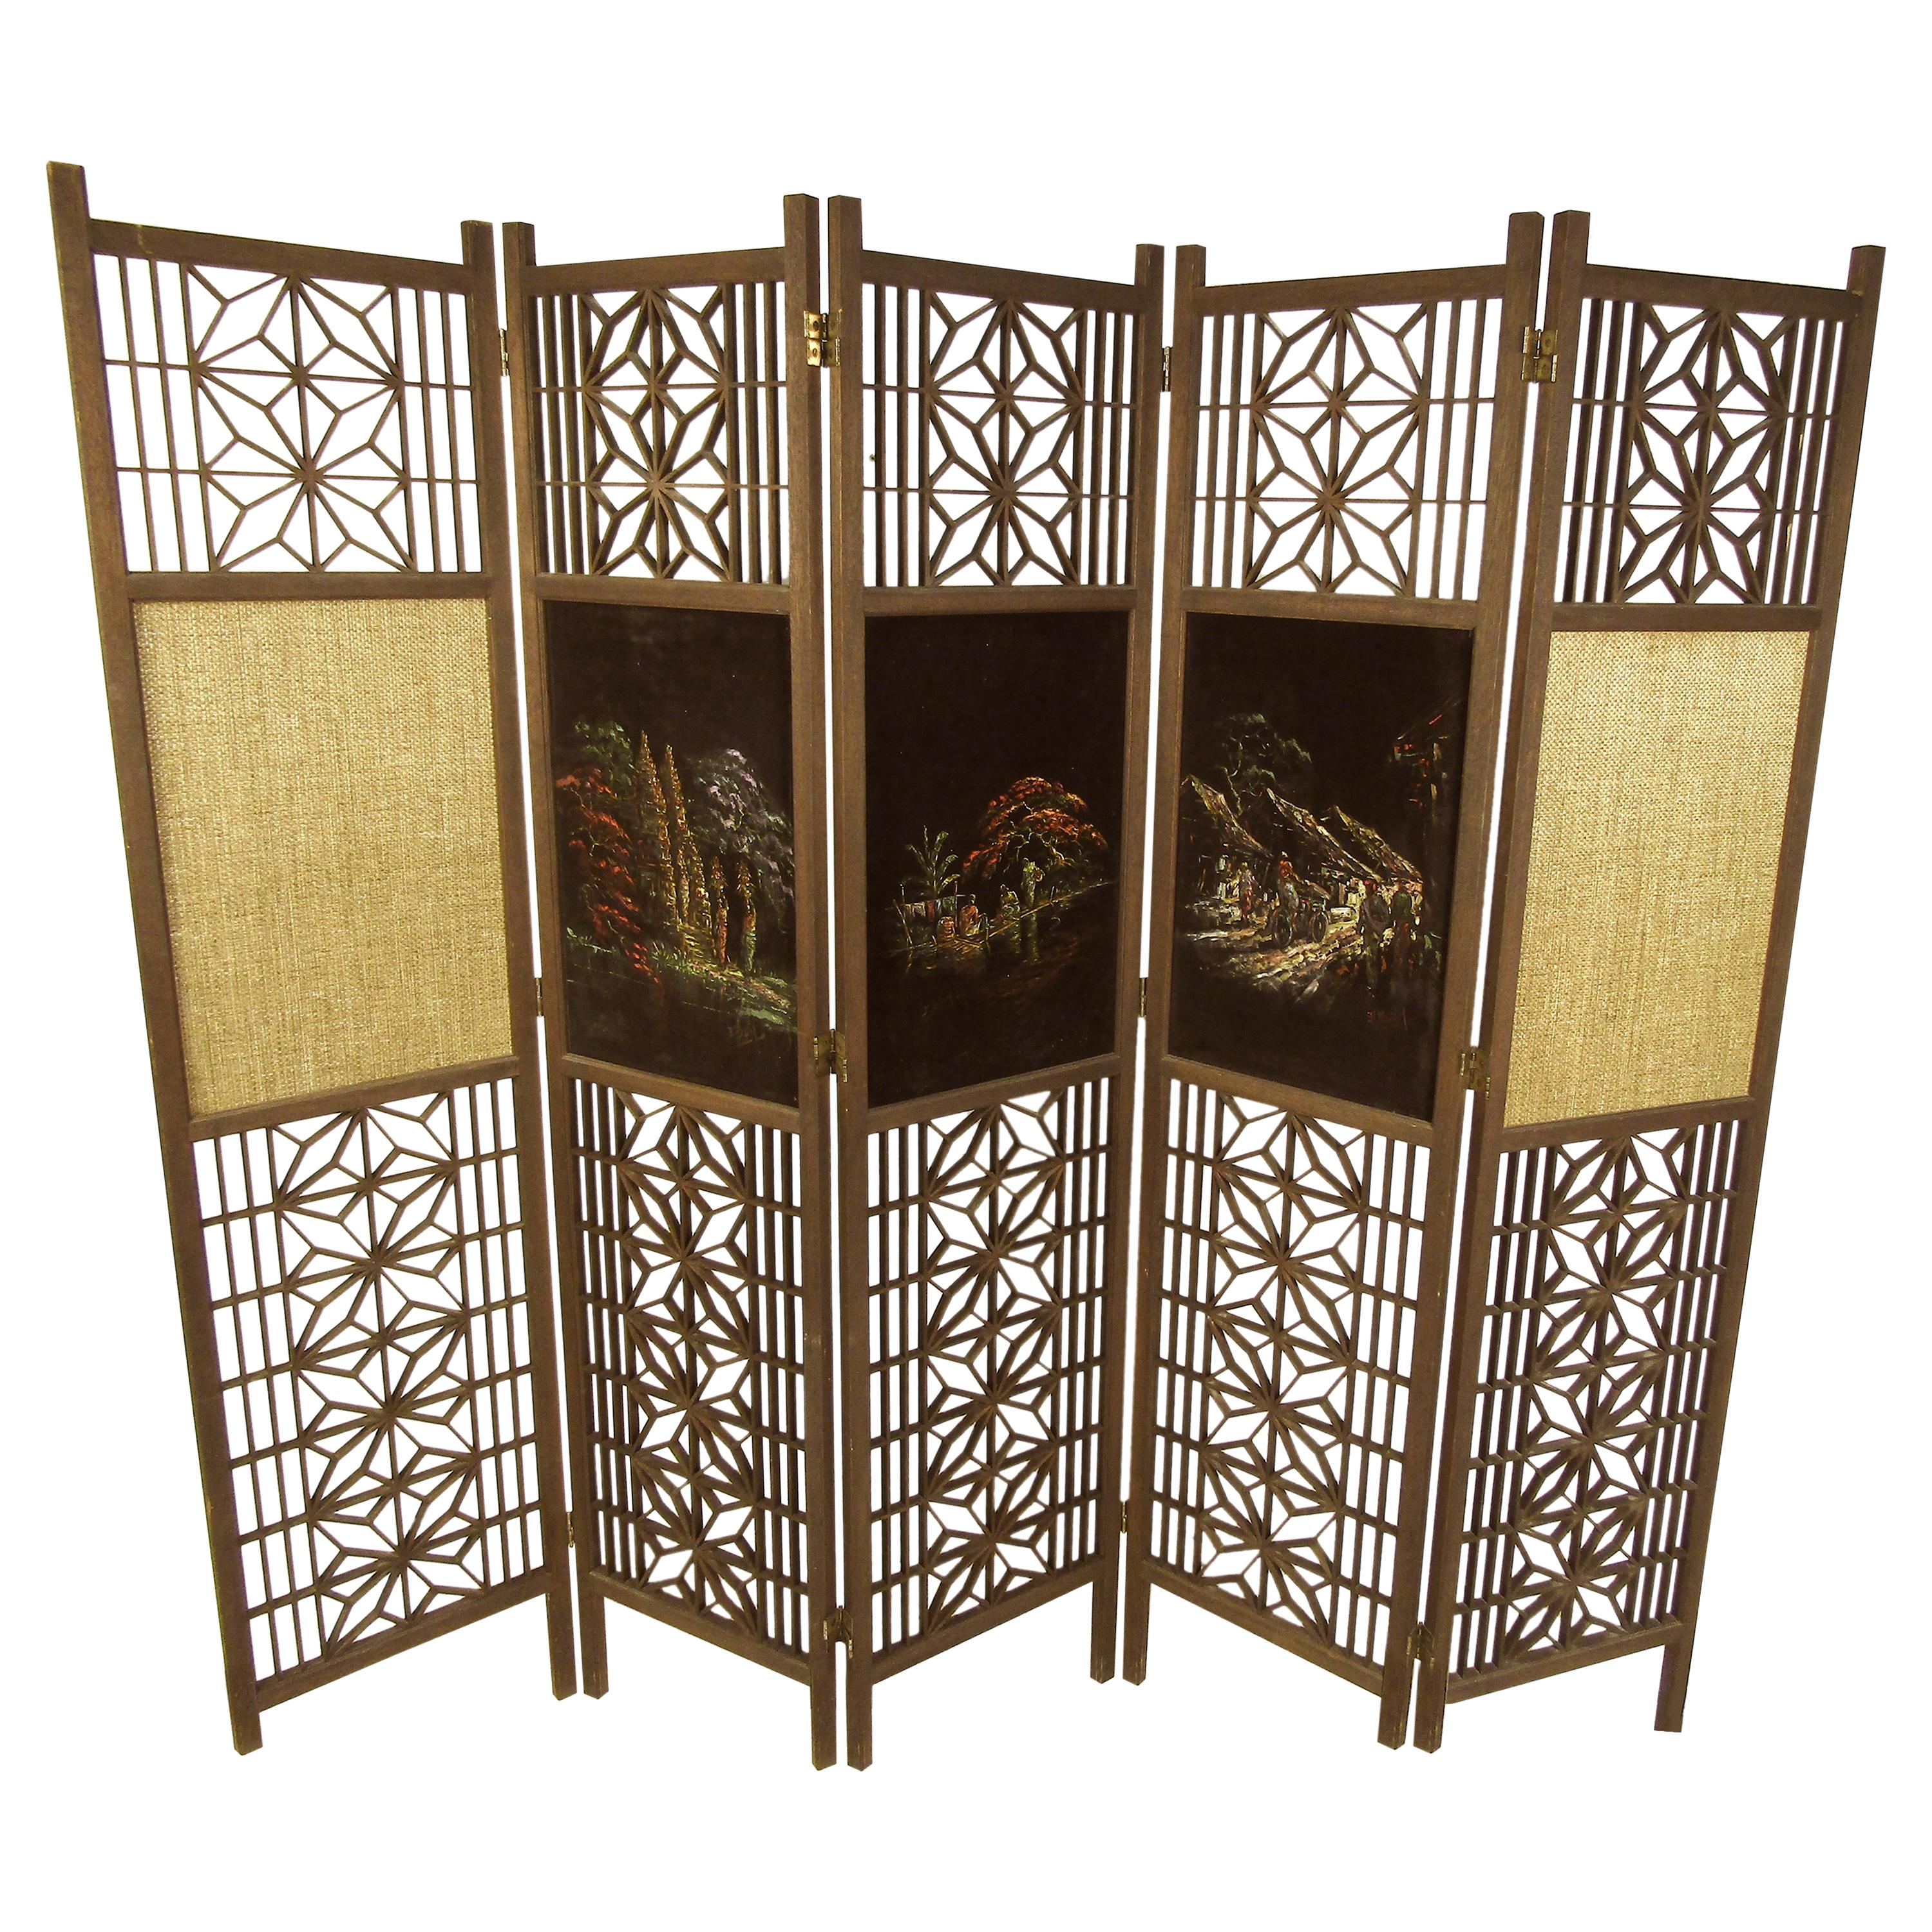 Wooden Hand Painted Room Divider